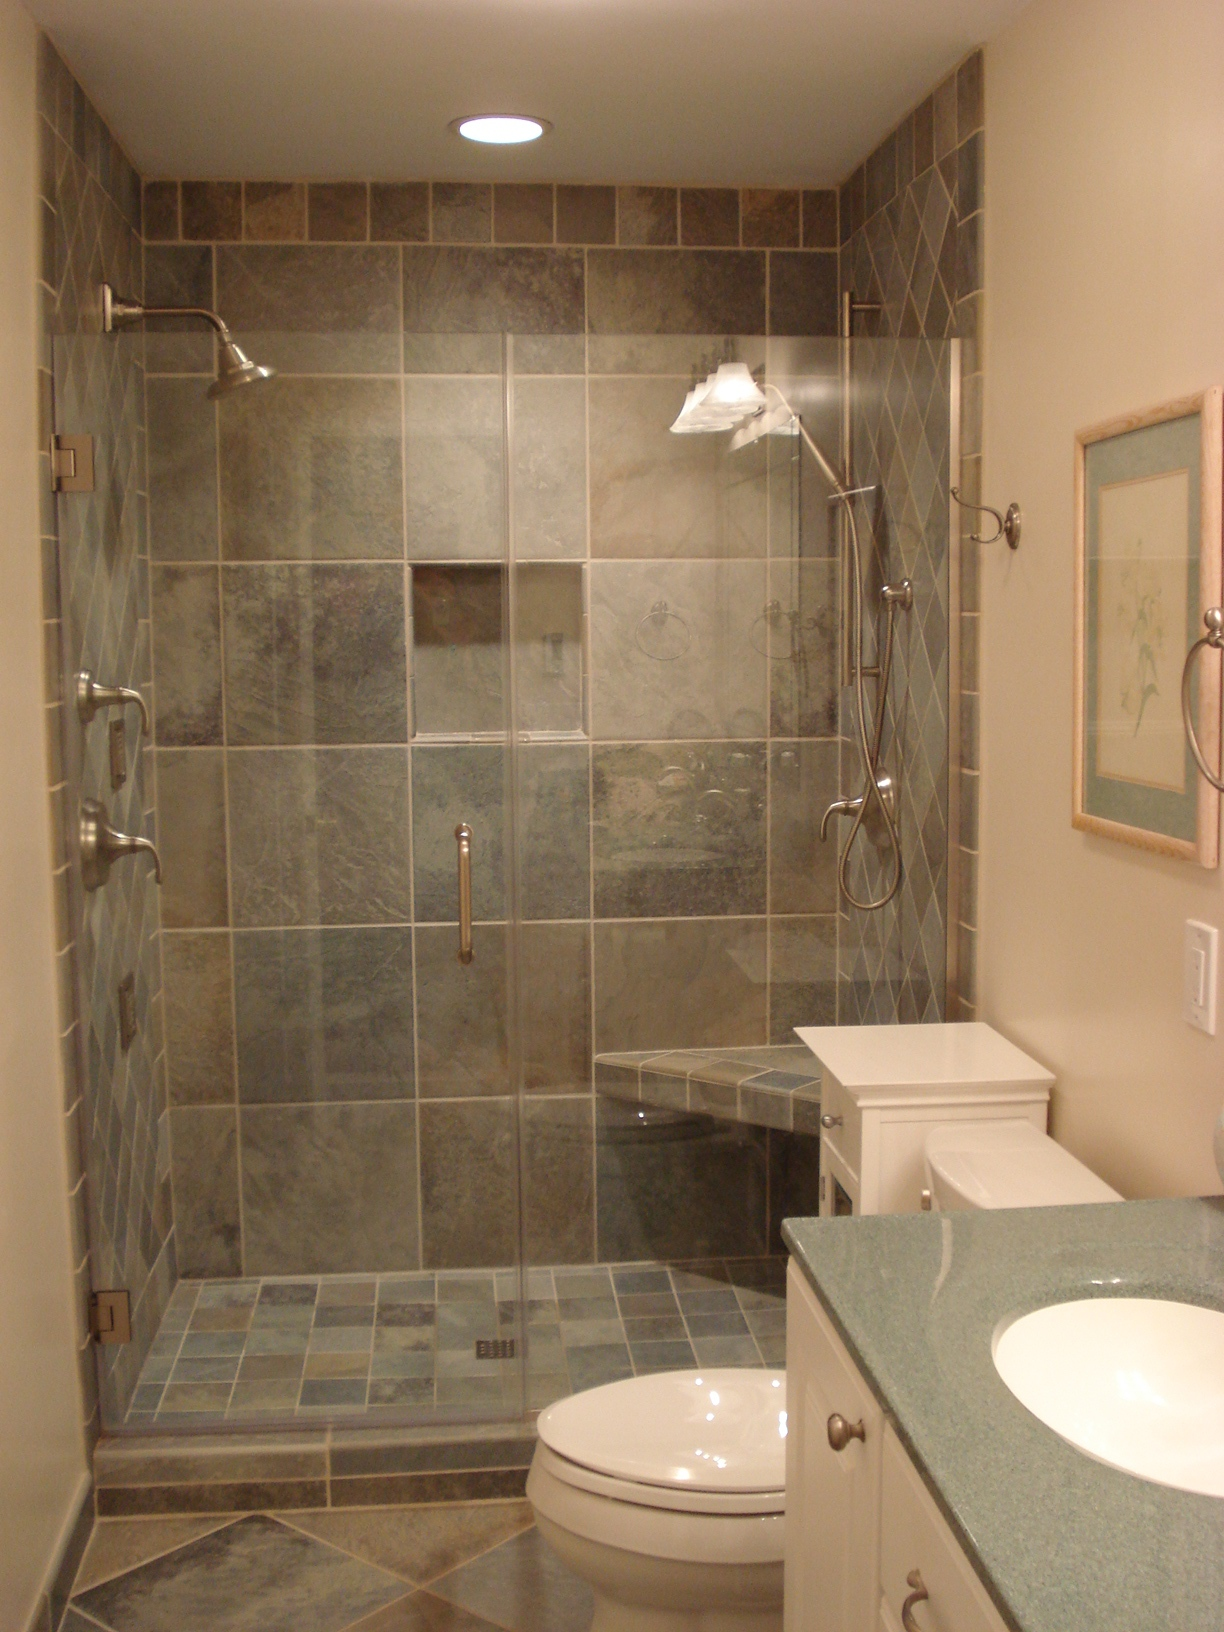 Lifetime design build inc completed projects Redesigning small bathrooms